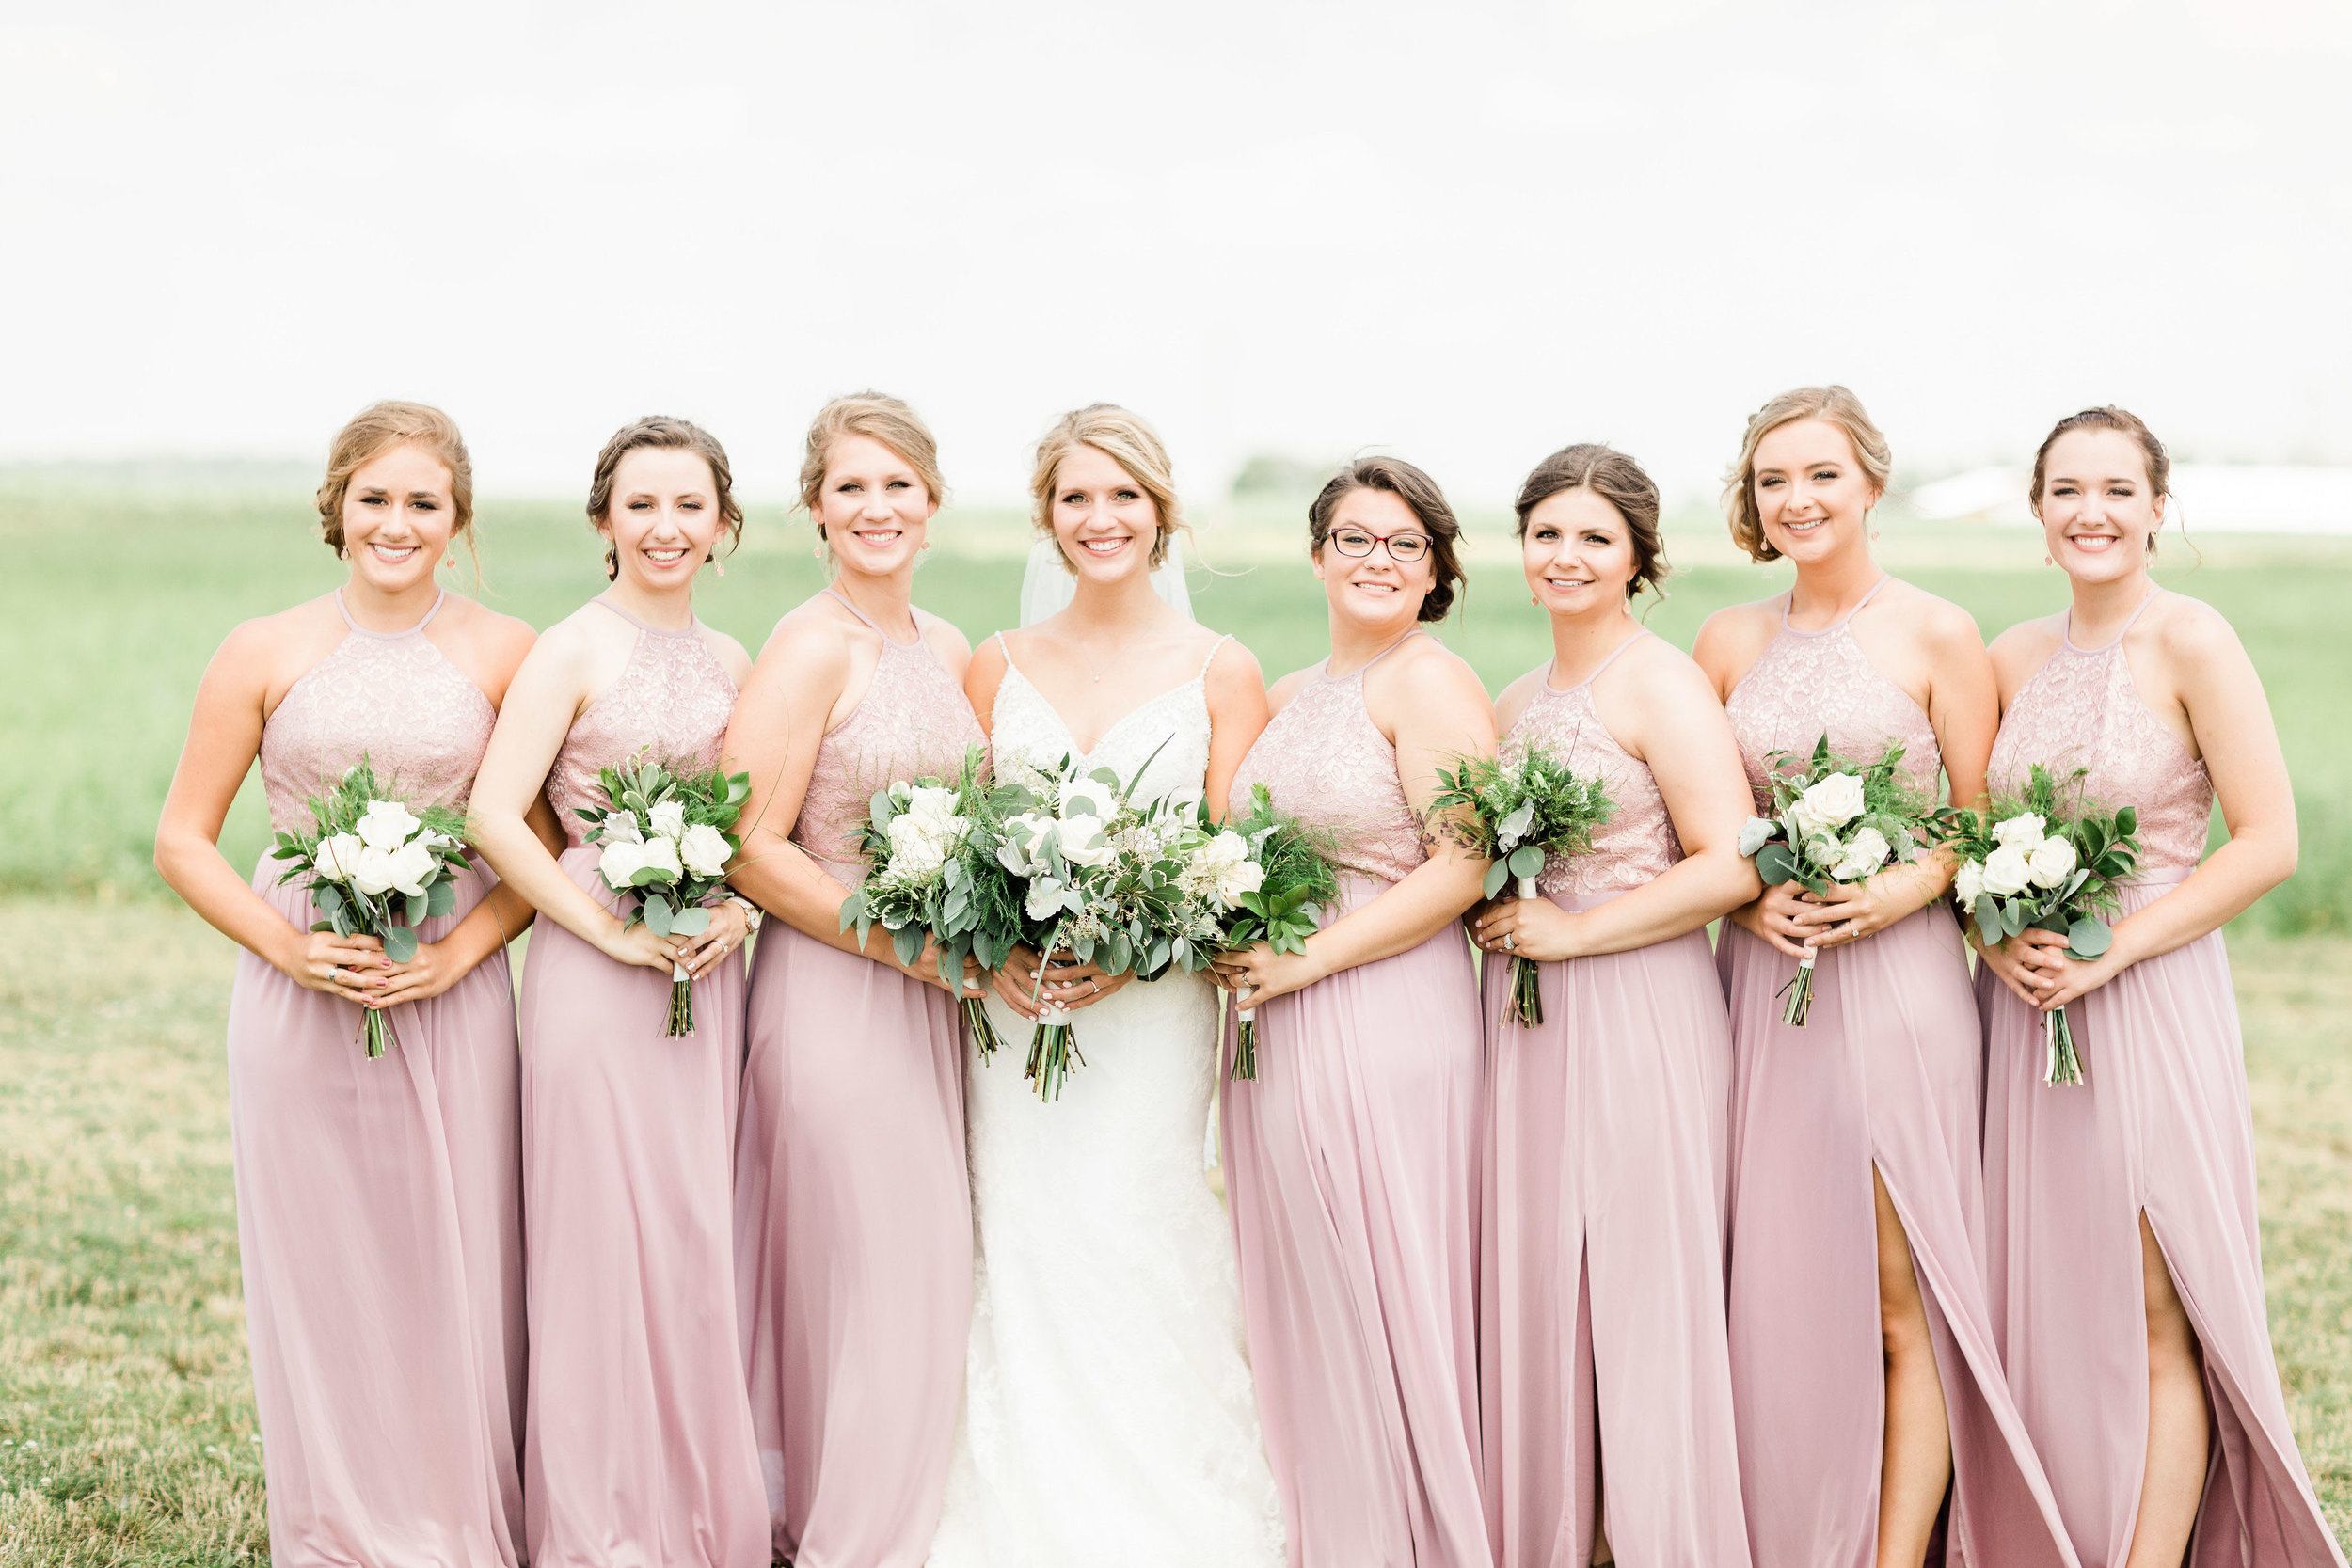 cincinnati wedding photographer bridal party pictures-1.jpg